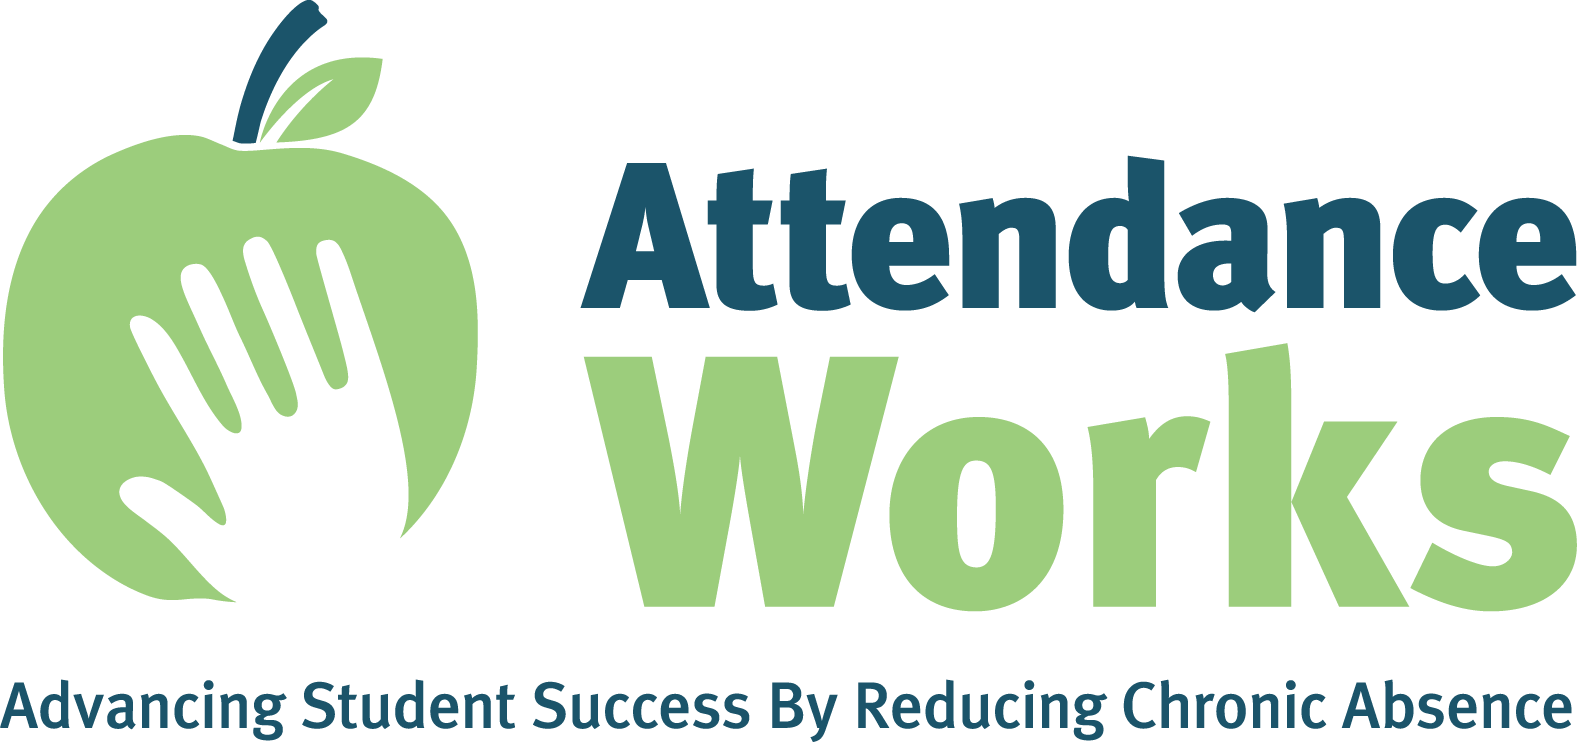 Working clipart work attendance. Home works